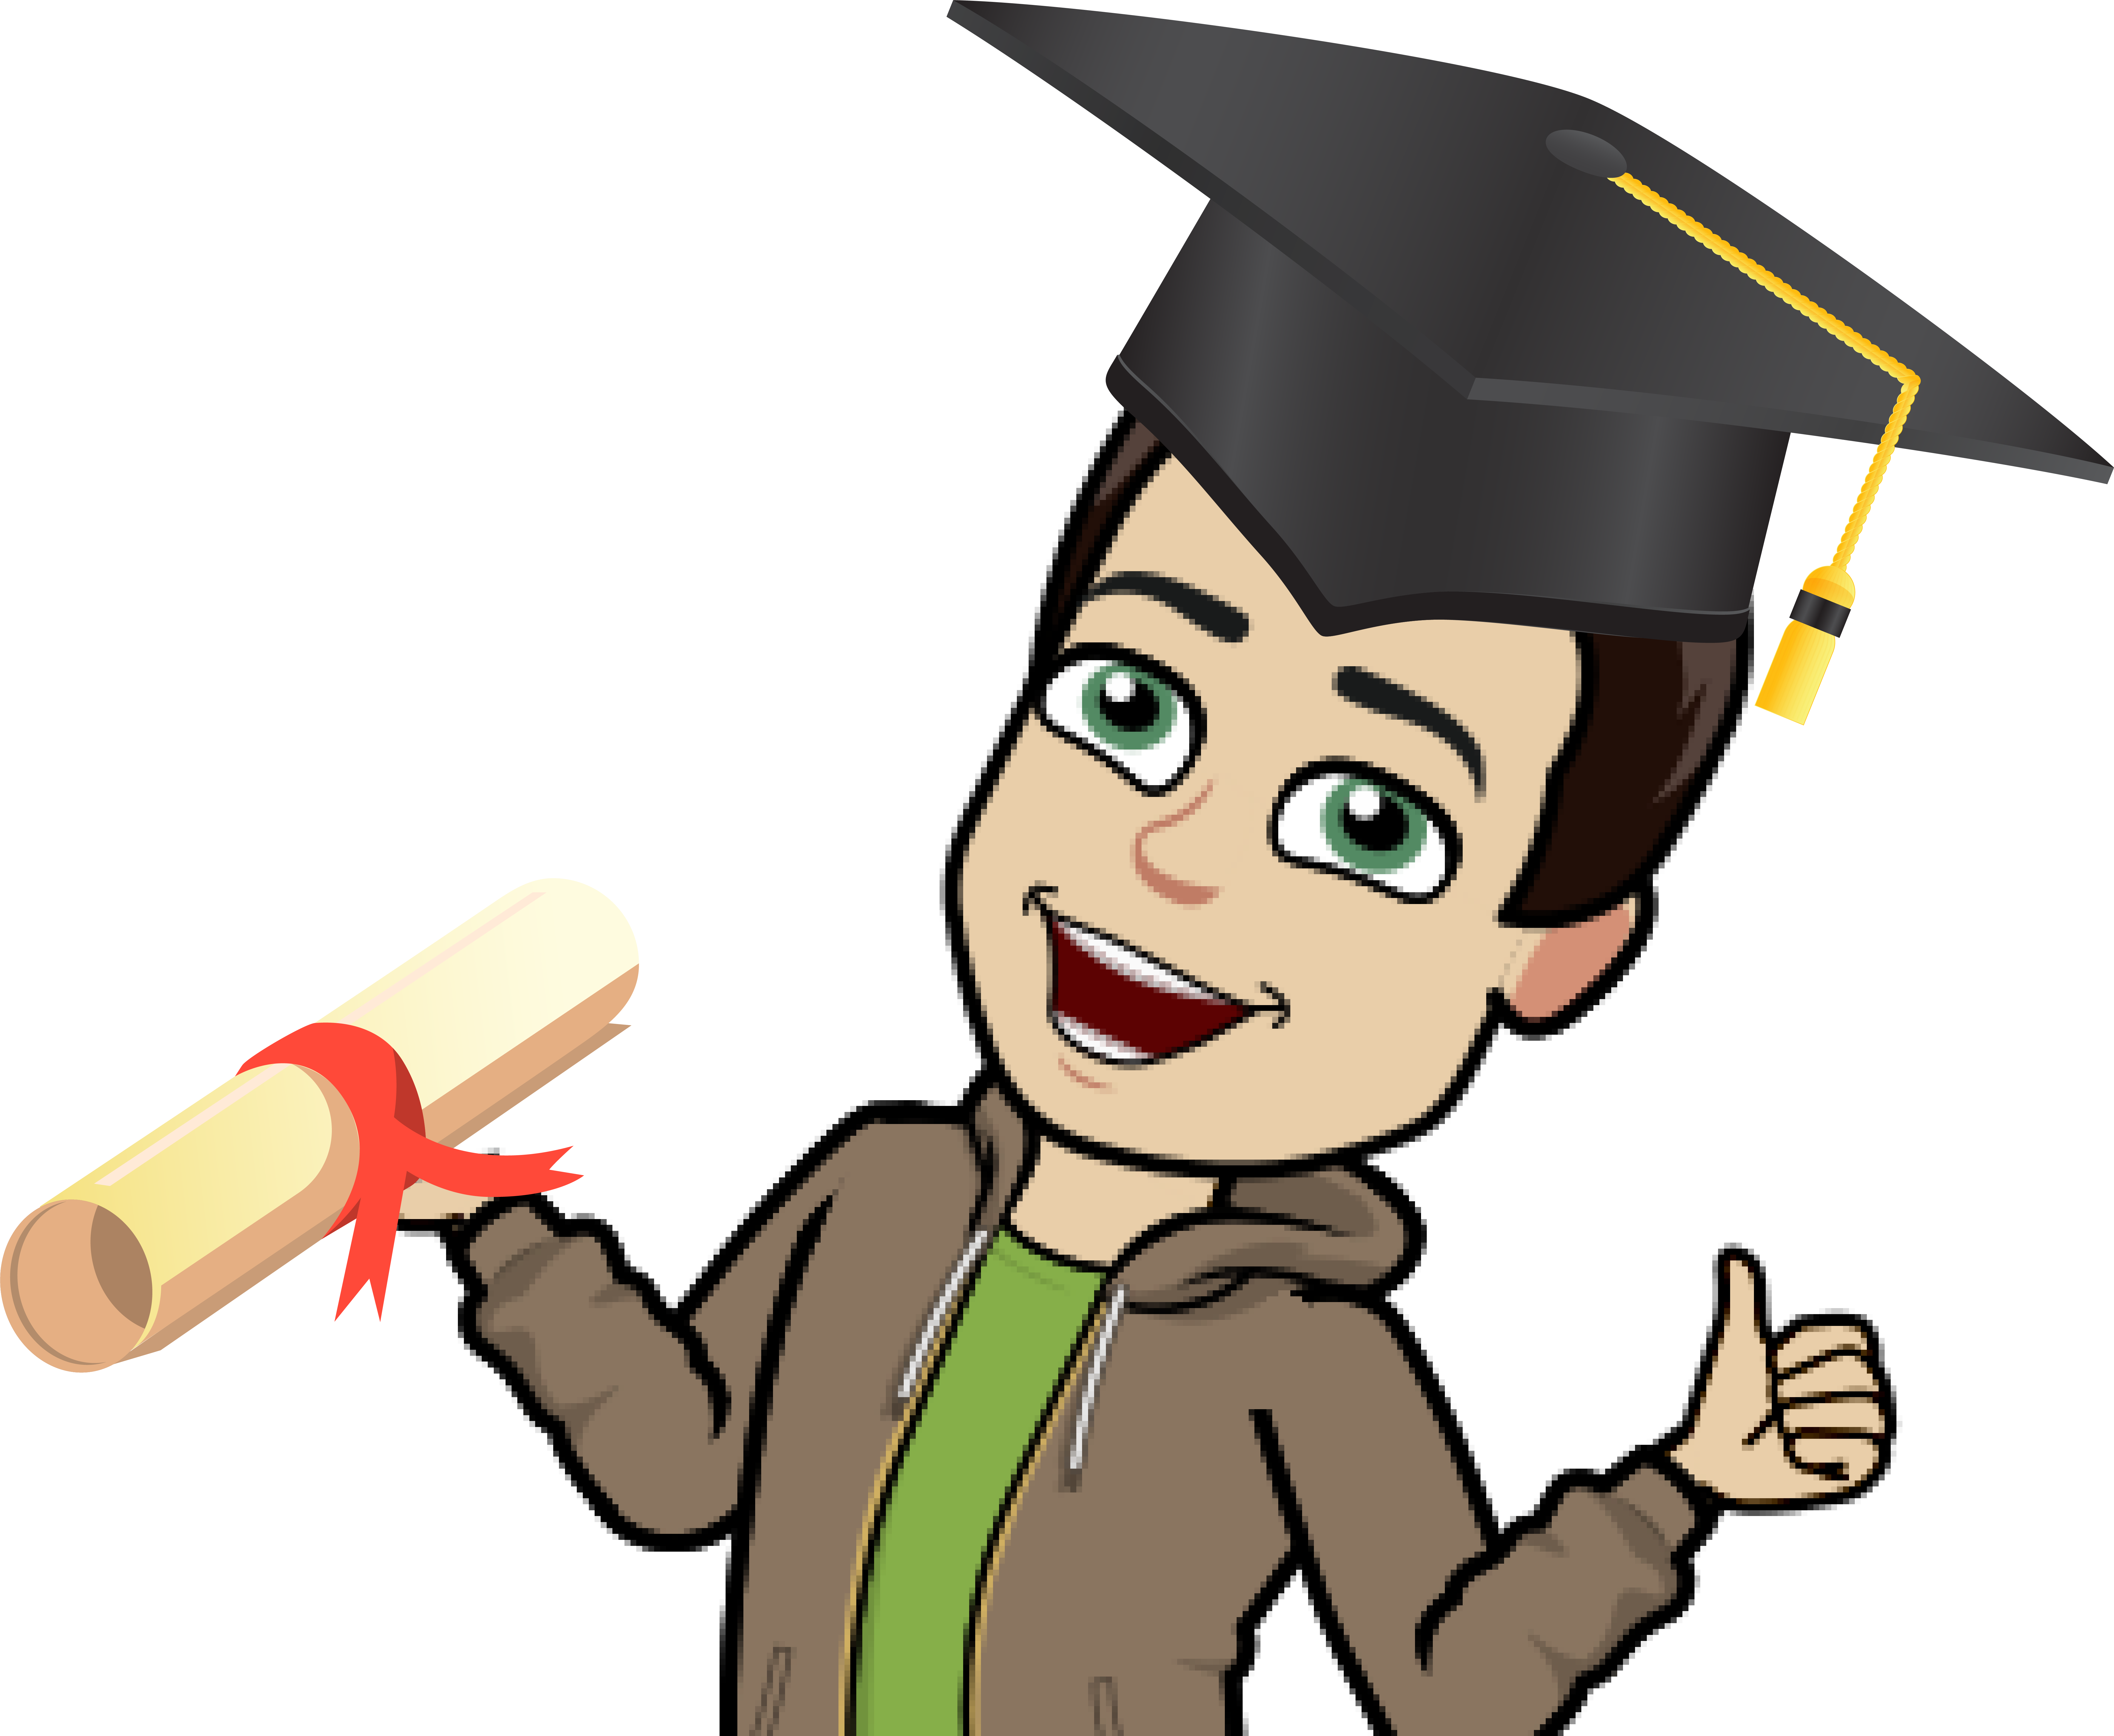 Engineer clipart dream school. Paying for college